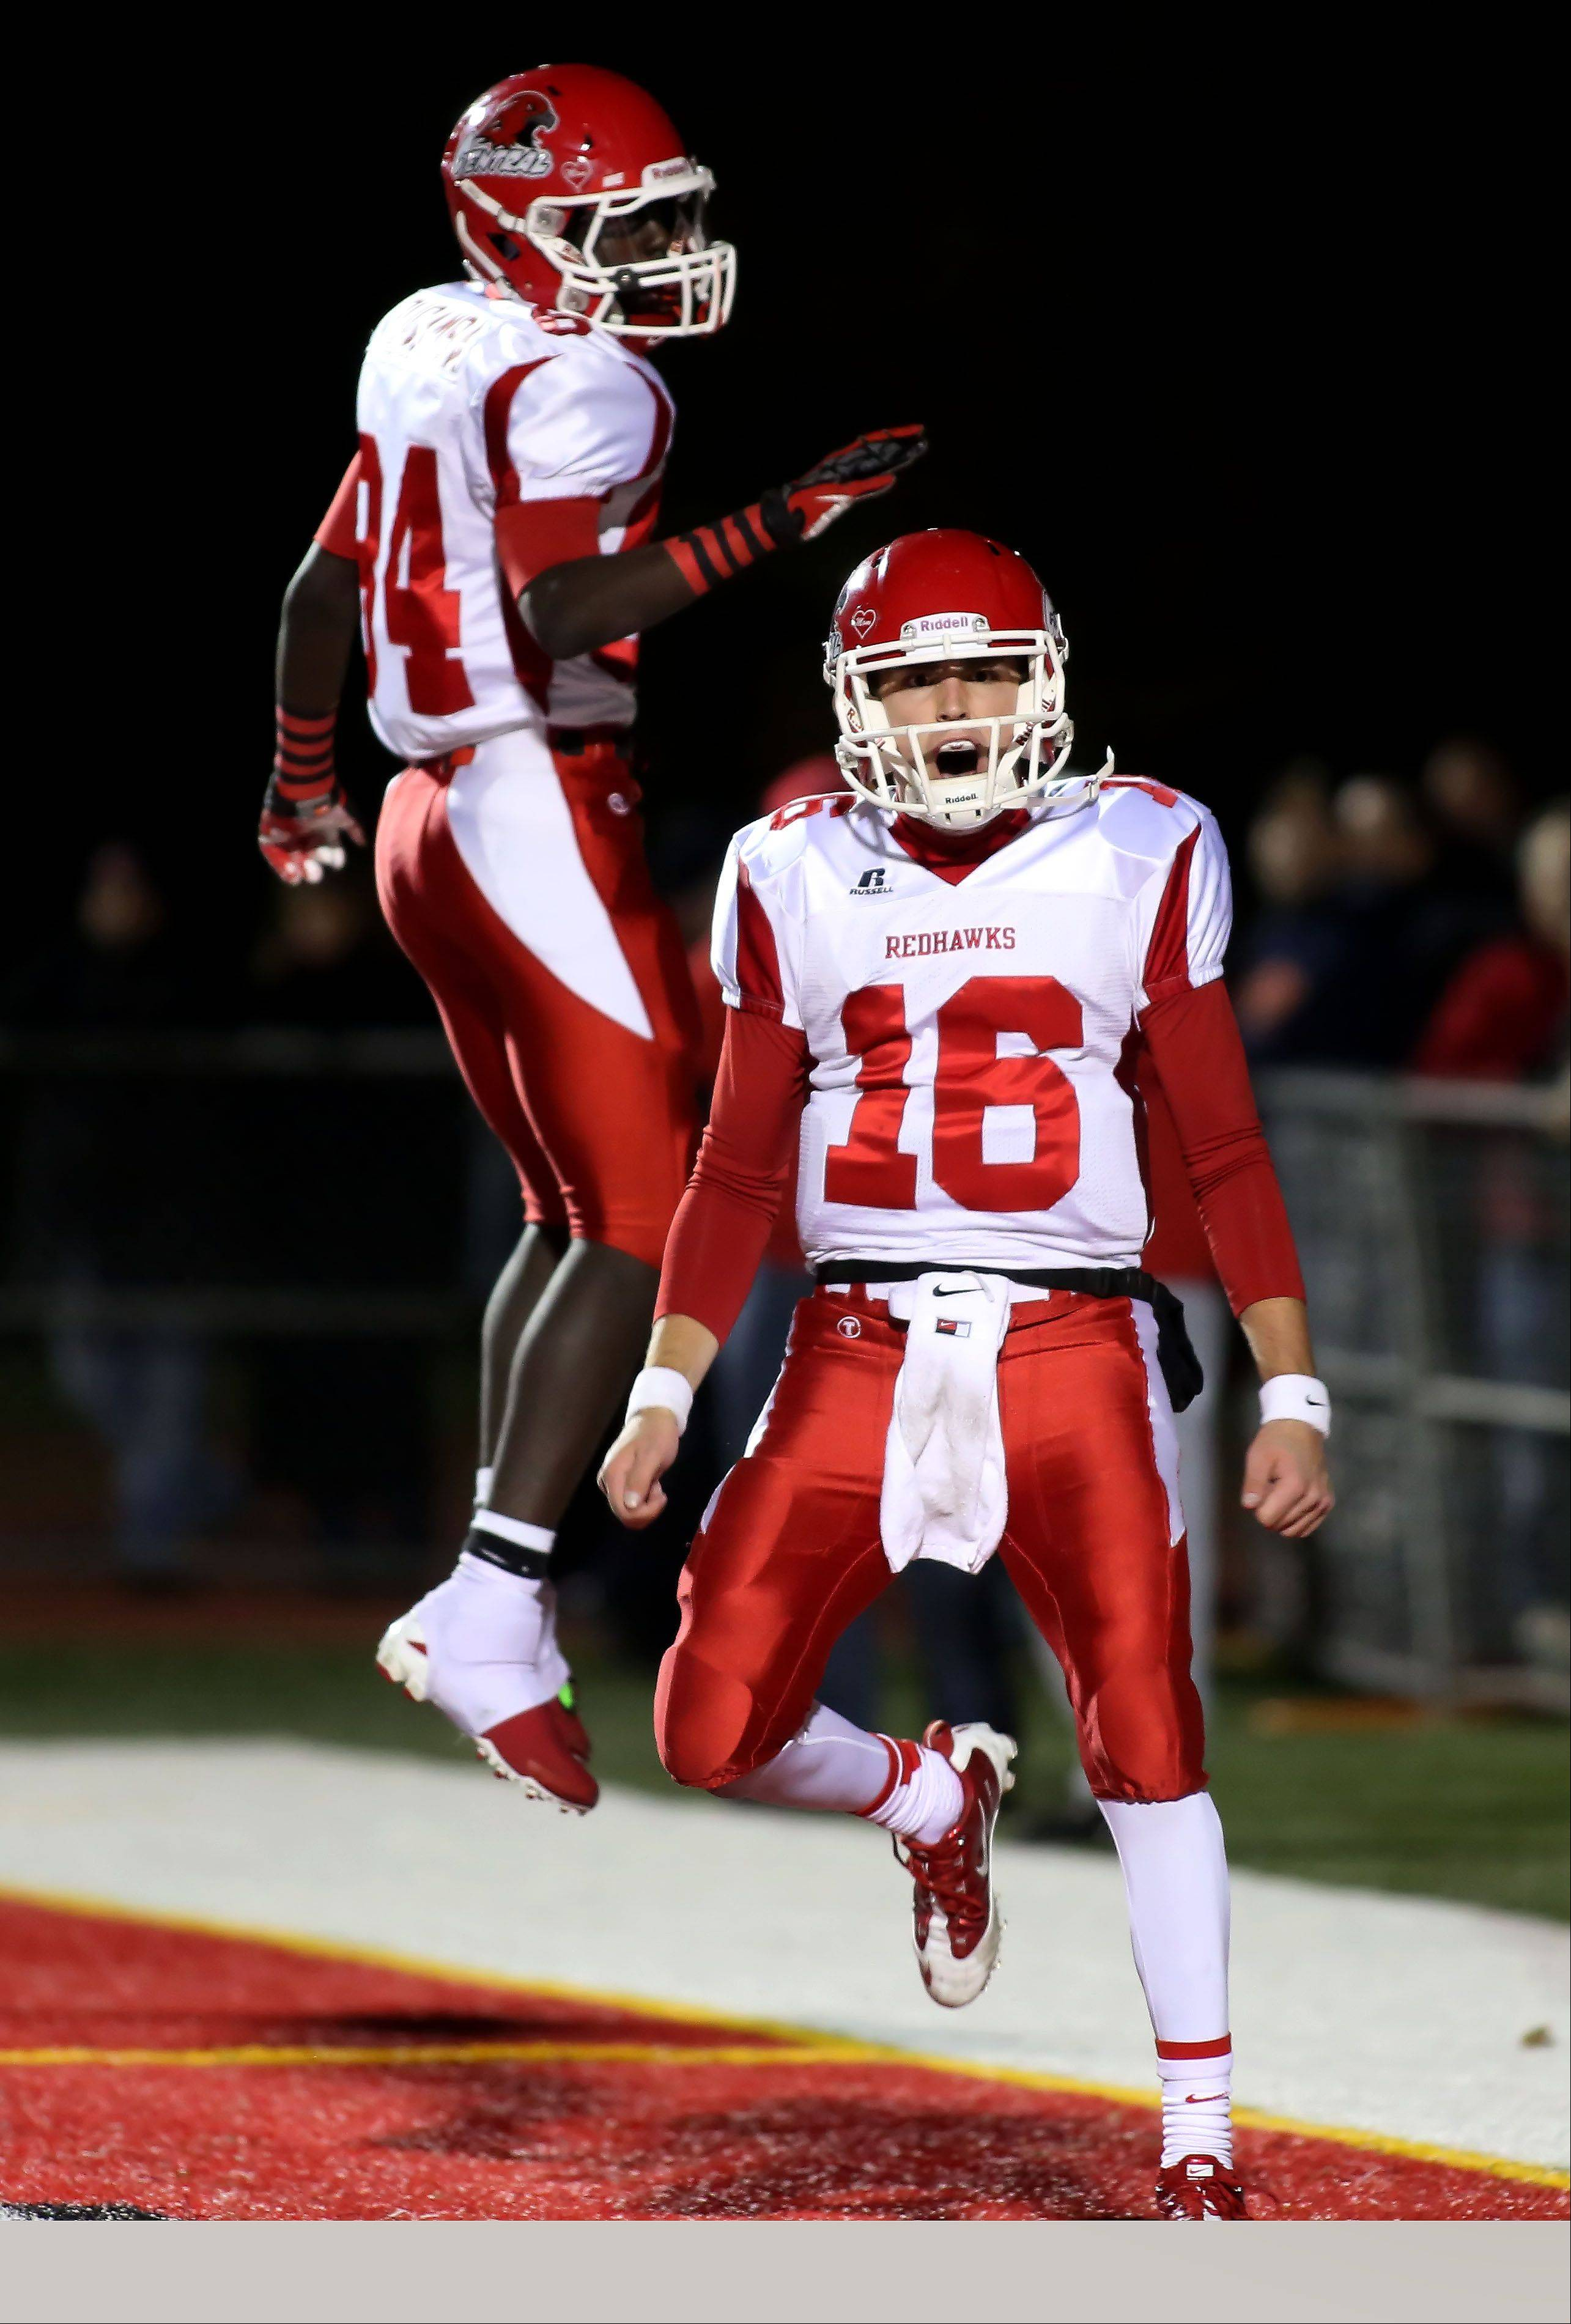 Quarterback Jake Kolbe, right, of Naperville Central celebrates with Emmanuel Rugamba after scoring a touchdown in the first quarter against Naperville North on Friday at North Central College.